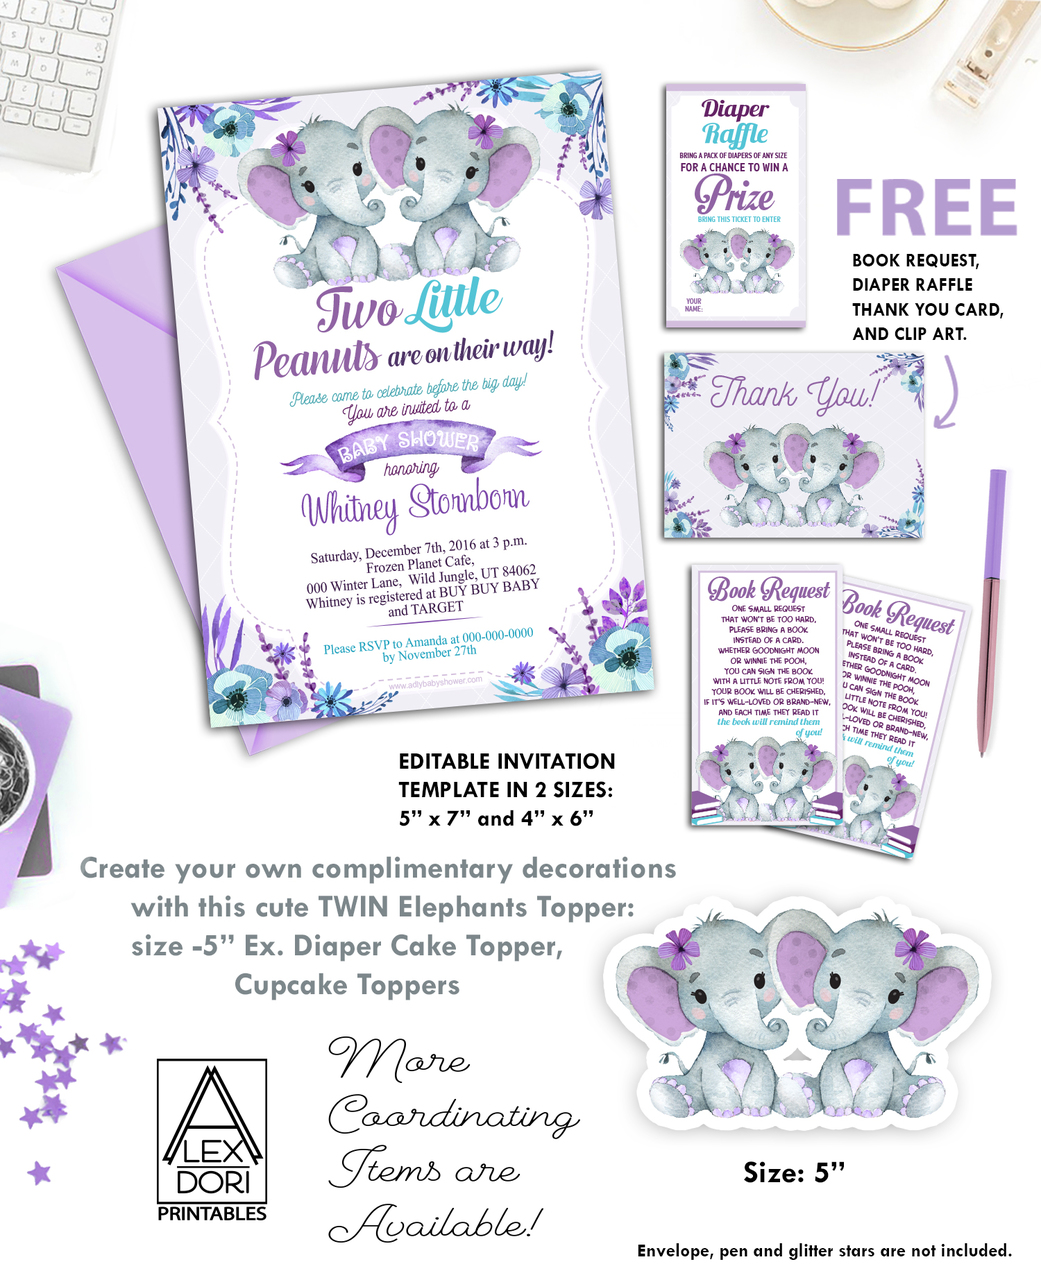 graphic regarding Free Baby Shower Invitations Printable called Dual Elephants Red Turquoise Little one Shower Invitation Printable Invitation - Peanuts Invite-Female Elephant Child Shower-Absolutely free Diaper Raffle